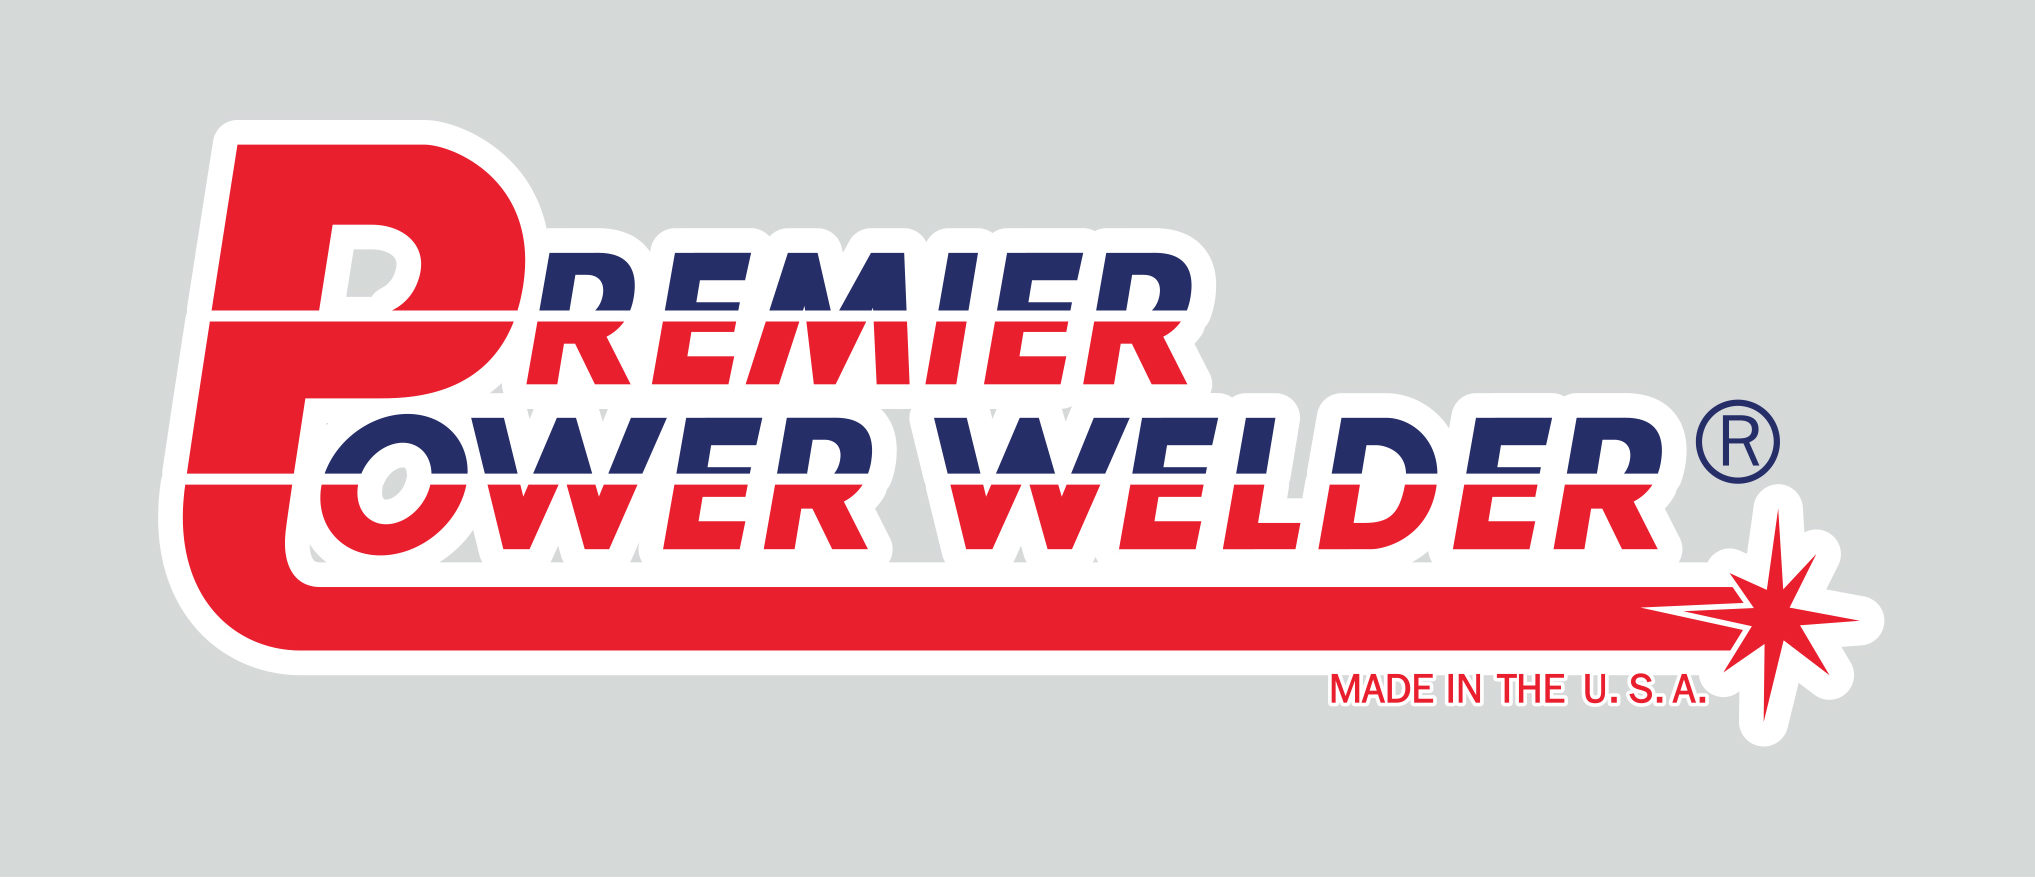 Premier Power Welder - Official Onboard Welder of Ultimate Adventure 2019